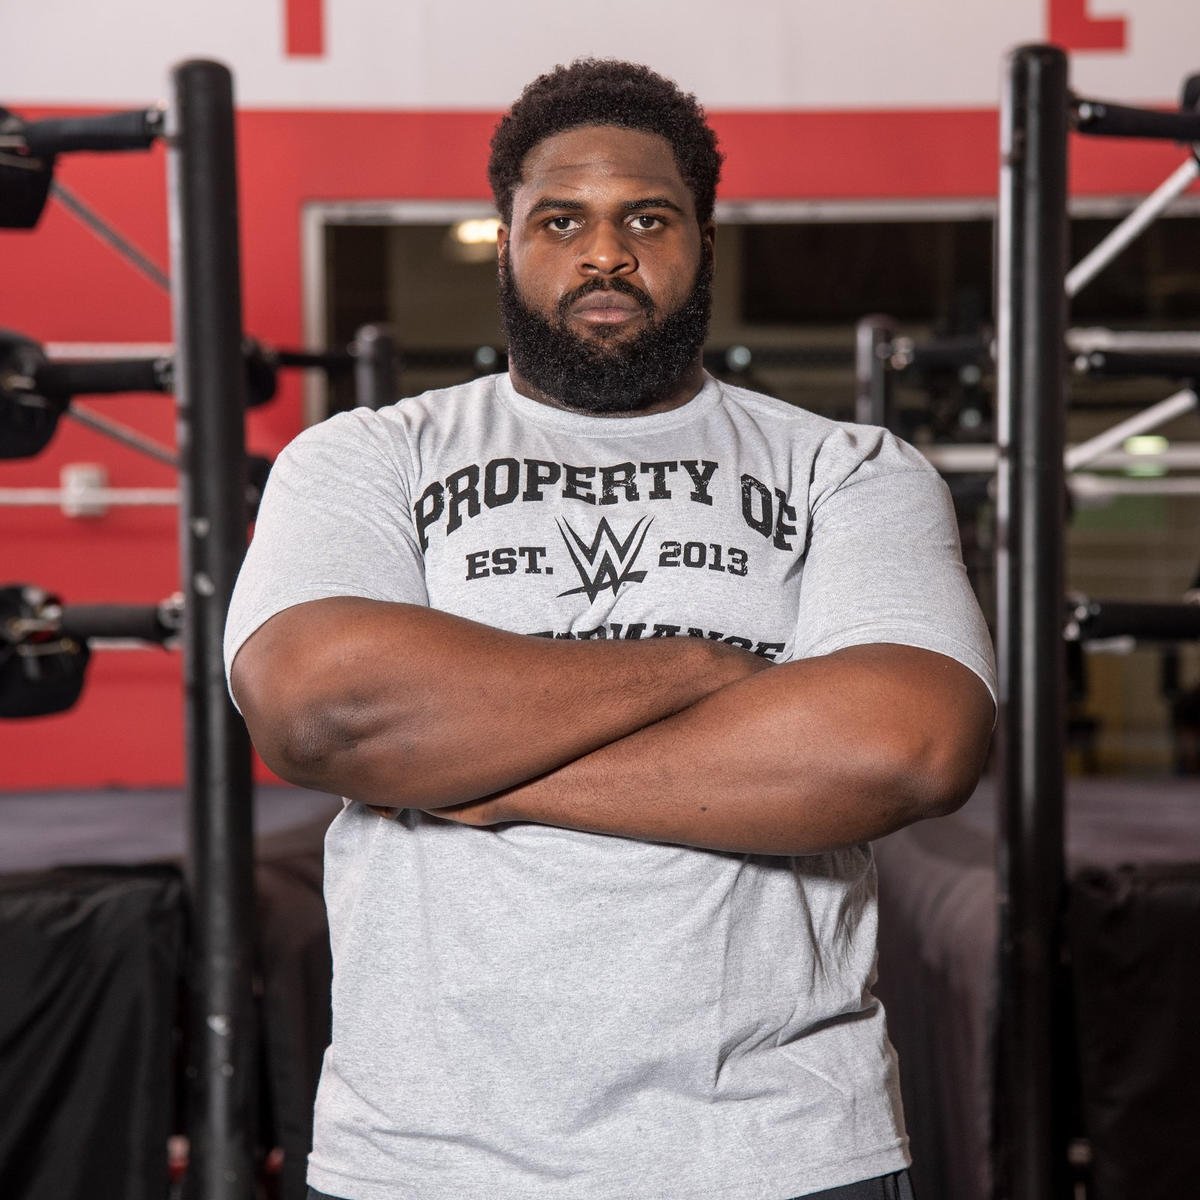 Although he's new to the ring, former college football player Omari Palmer cuts an imposing figure, standing 6-foot-3 and weighing 350 pounds.